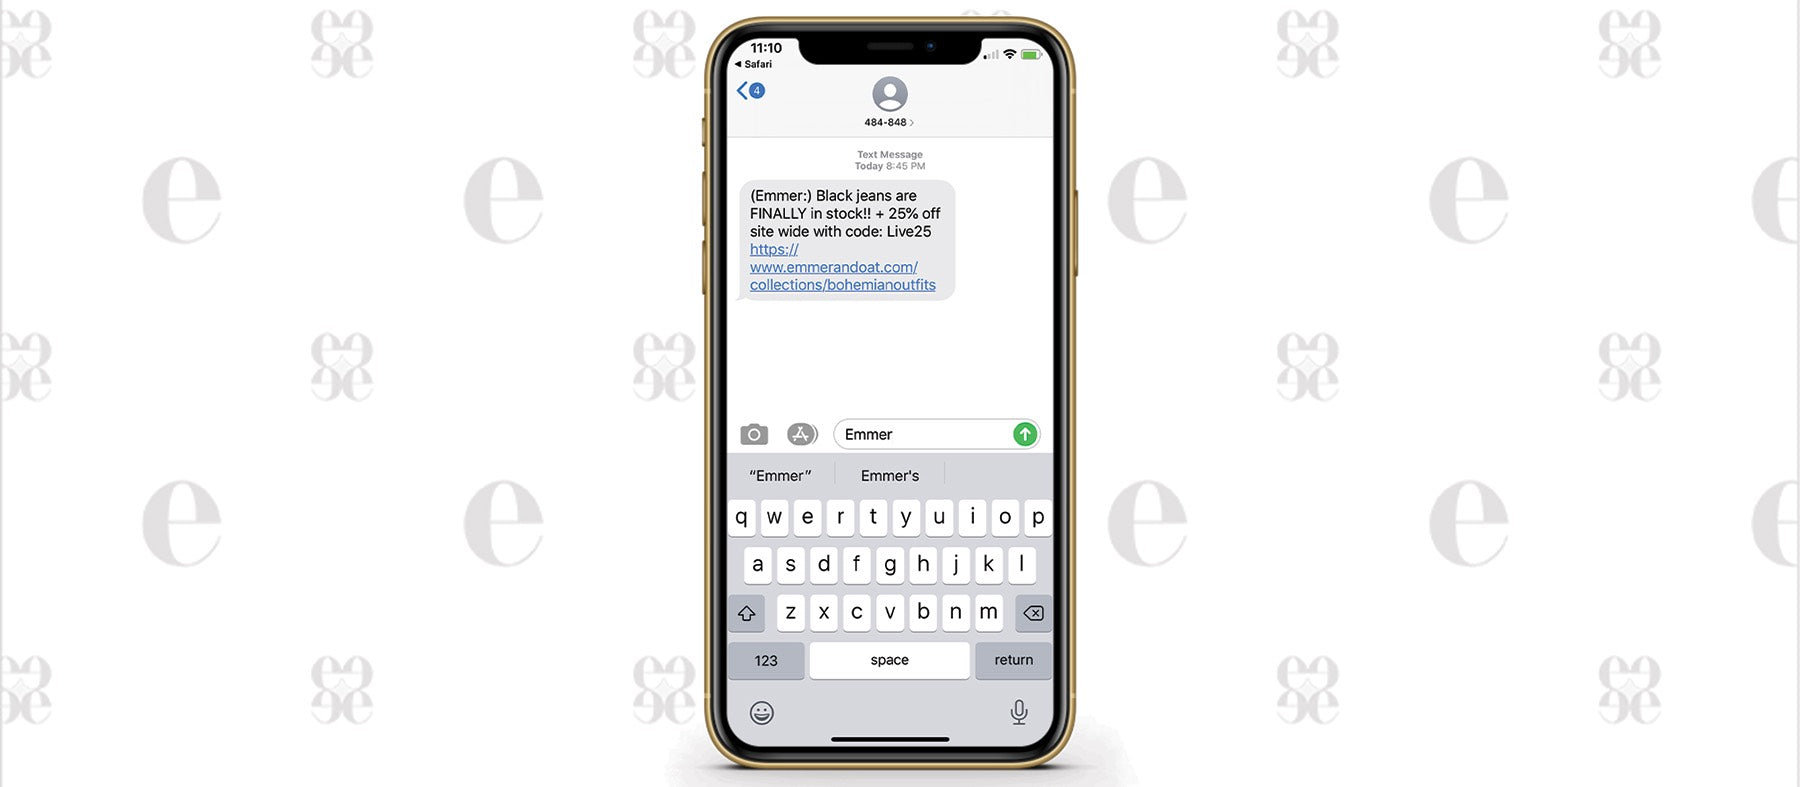 picture of a phone with the text screen pulled up with emmer in the send line the screen of the phone reads black jeans finally in stock get 25% off site wide with code live25